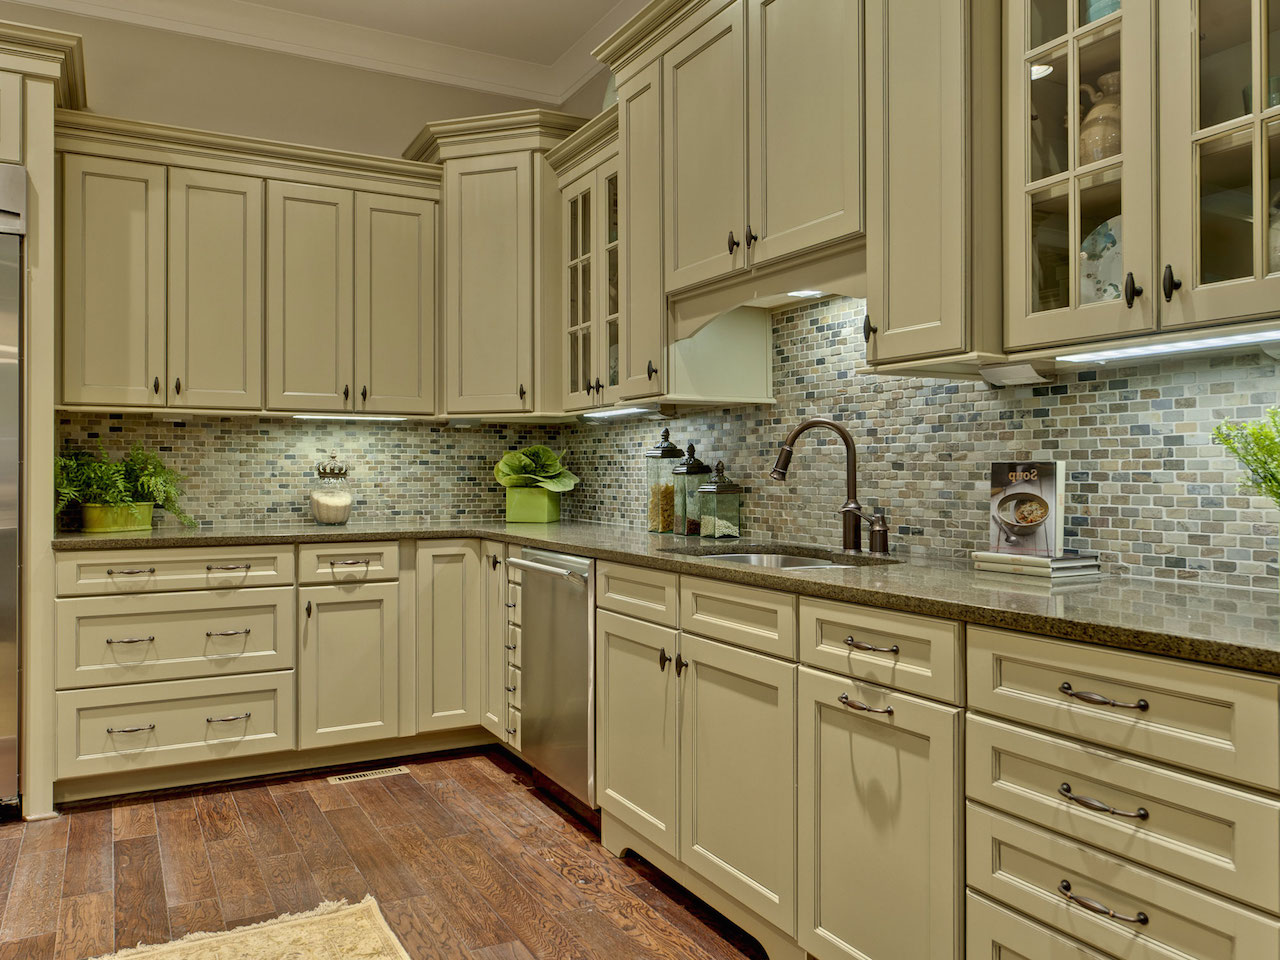 Grey Tile Backsplash and Interesting Painted Kitchen Cabinets Placed in Old Fashioned Kitchen with Hardwood Flooring